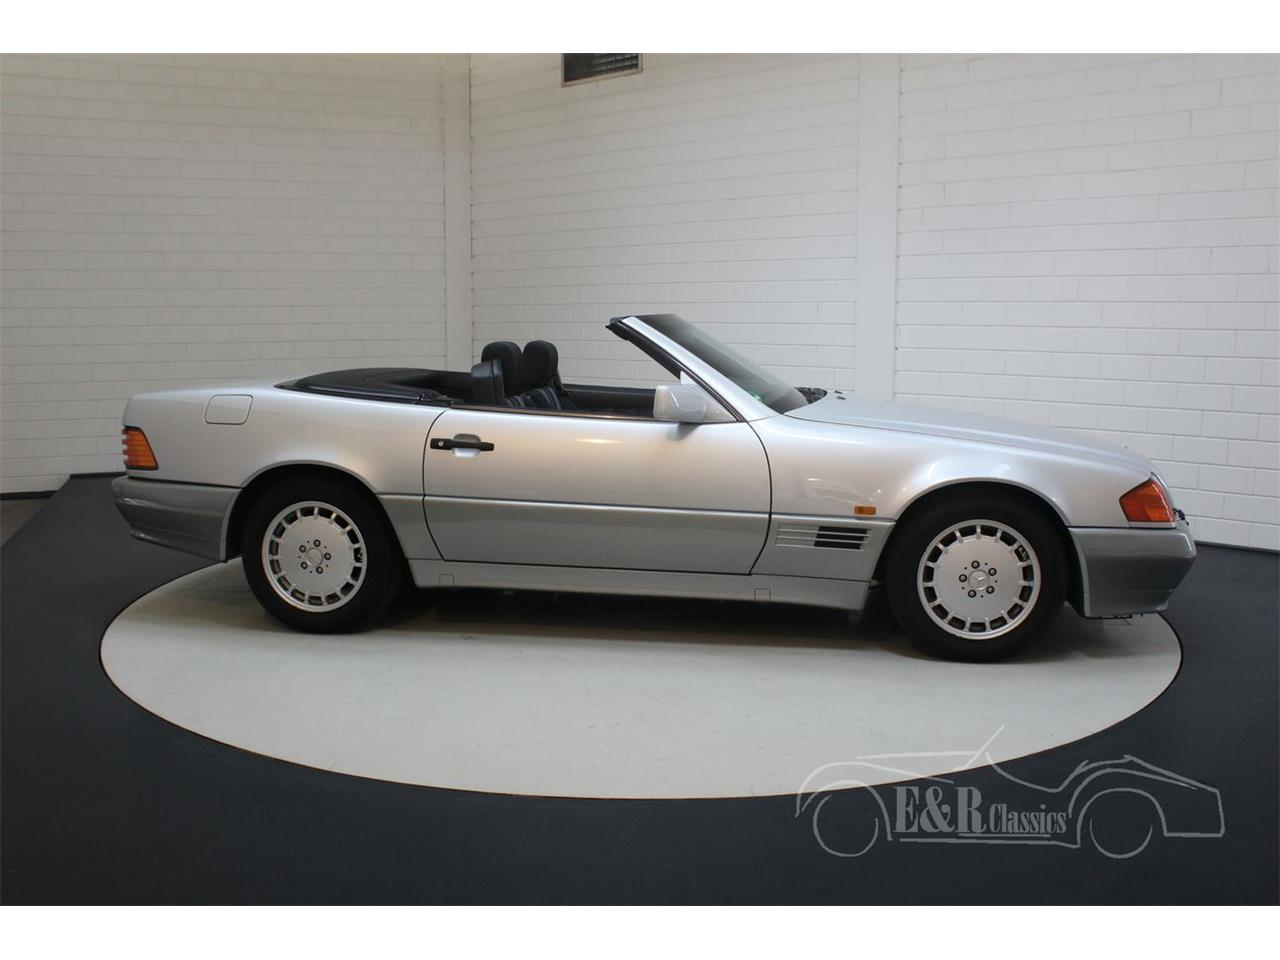 Large Picture of '91 Mercedes-Benz 500SL Offered by E & R Classics - Q33D